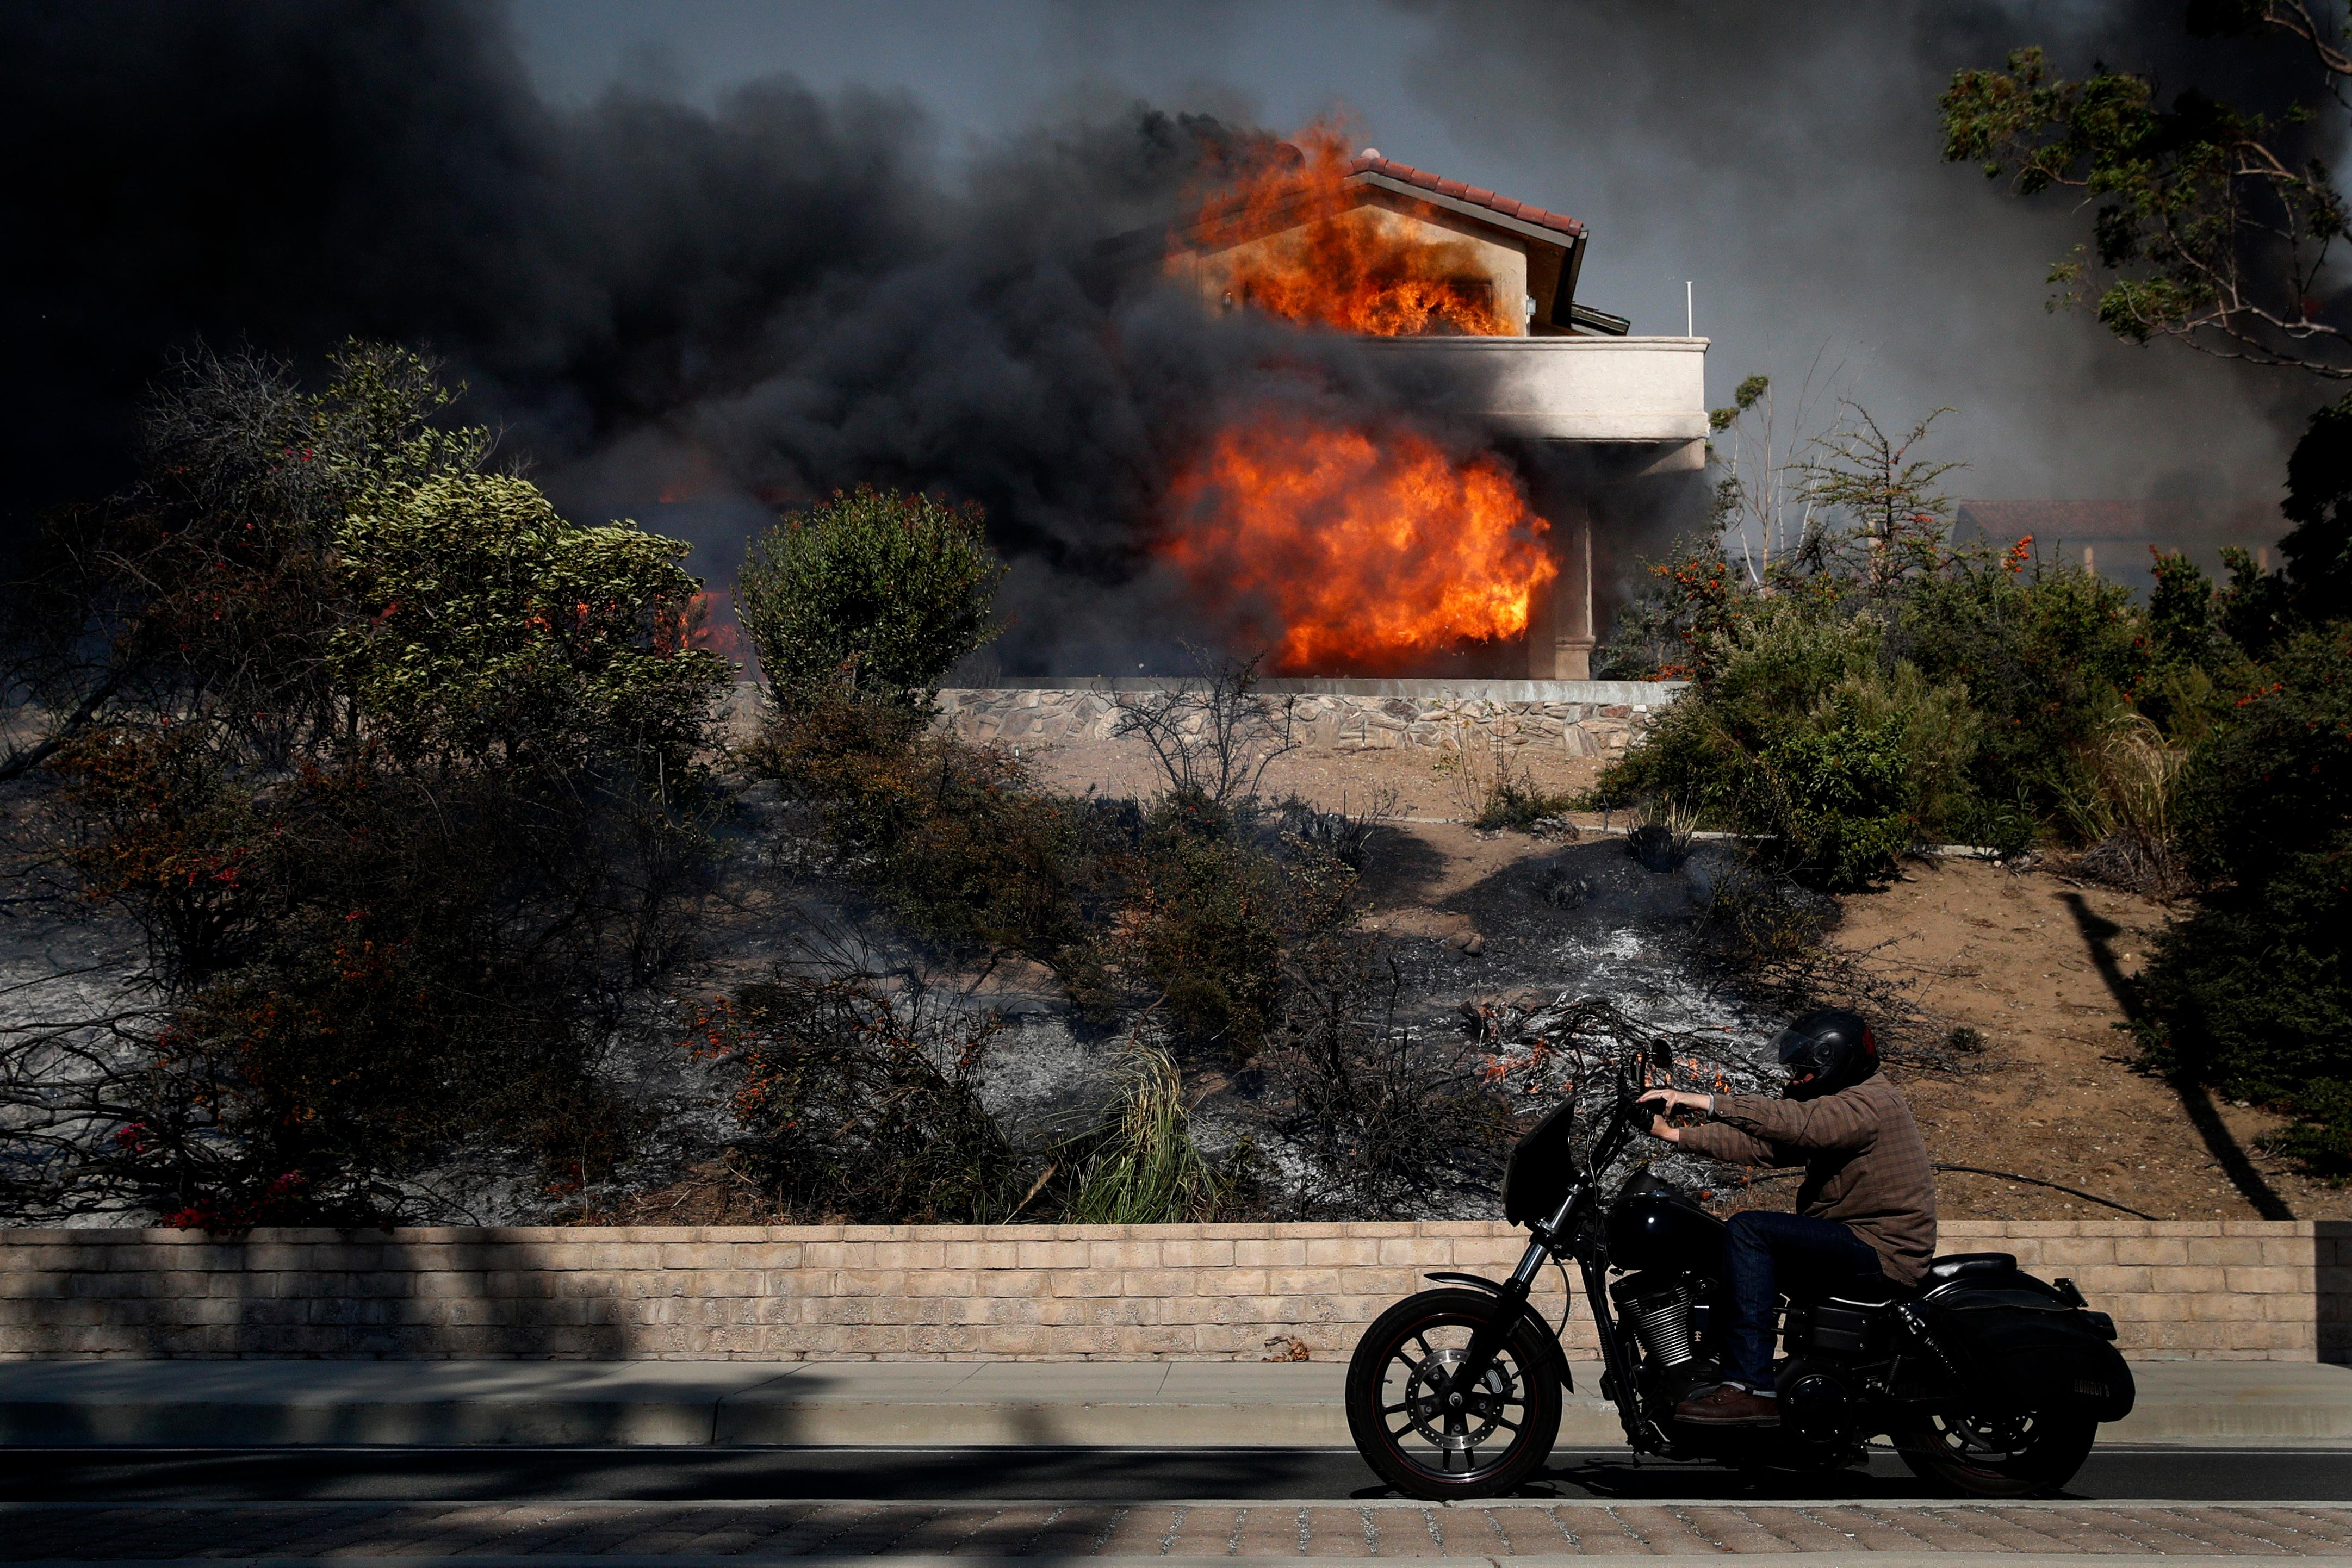 A man rides his bike past a home consumed by a wildfire Tuesday, Dec. 5, 2017, in Ventura, Calif. (AP Photo/Jae C. Hong)